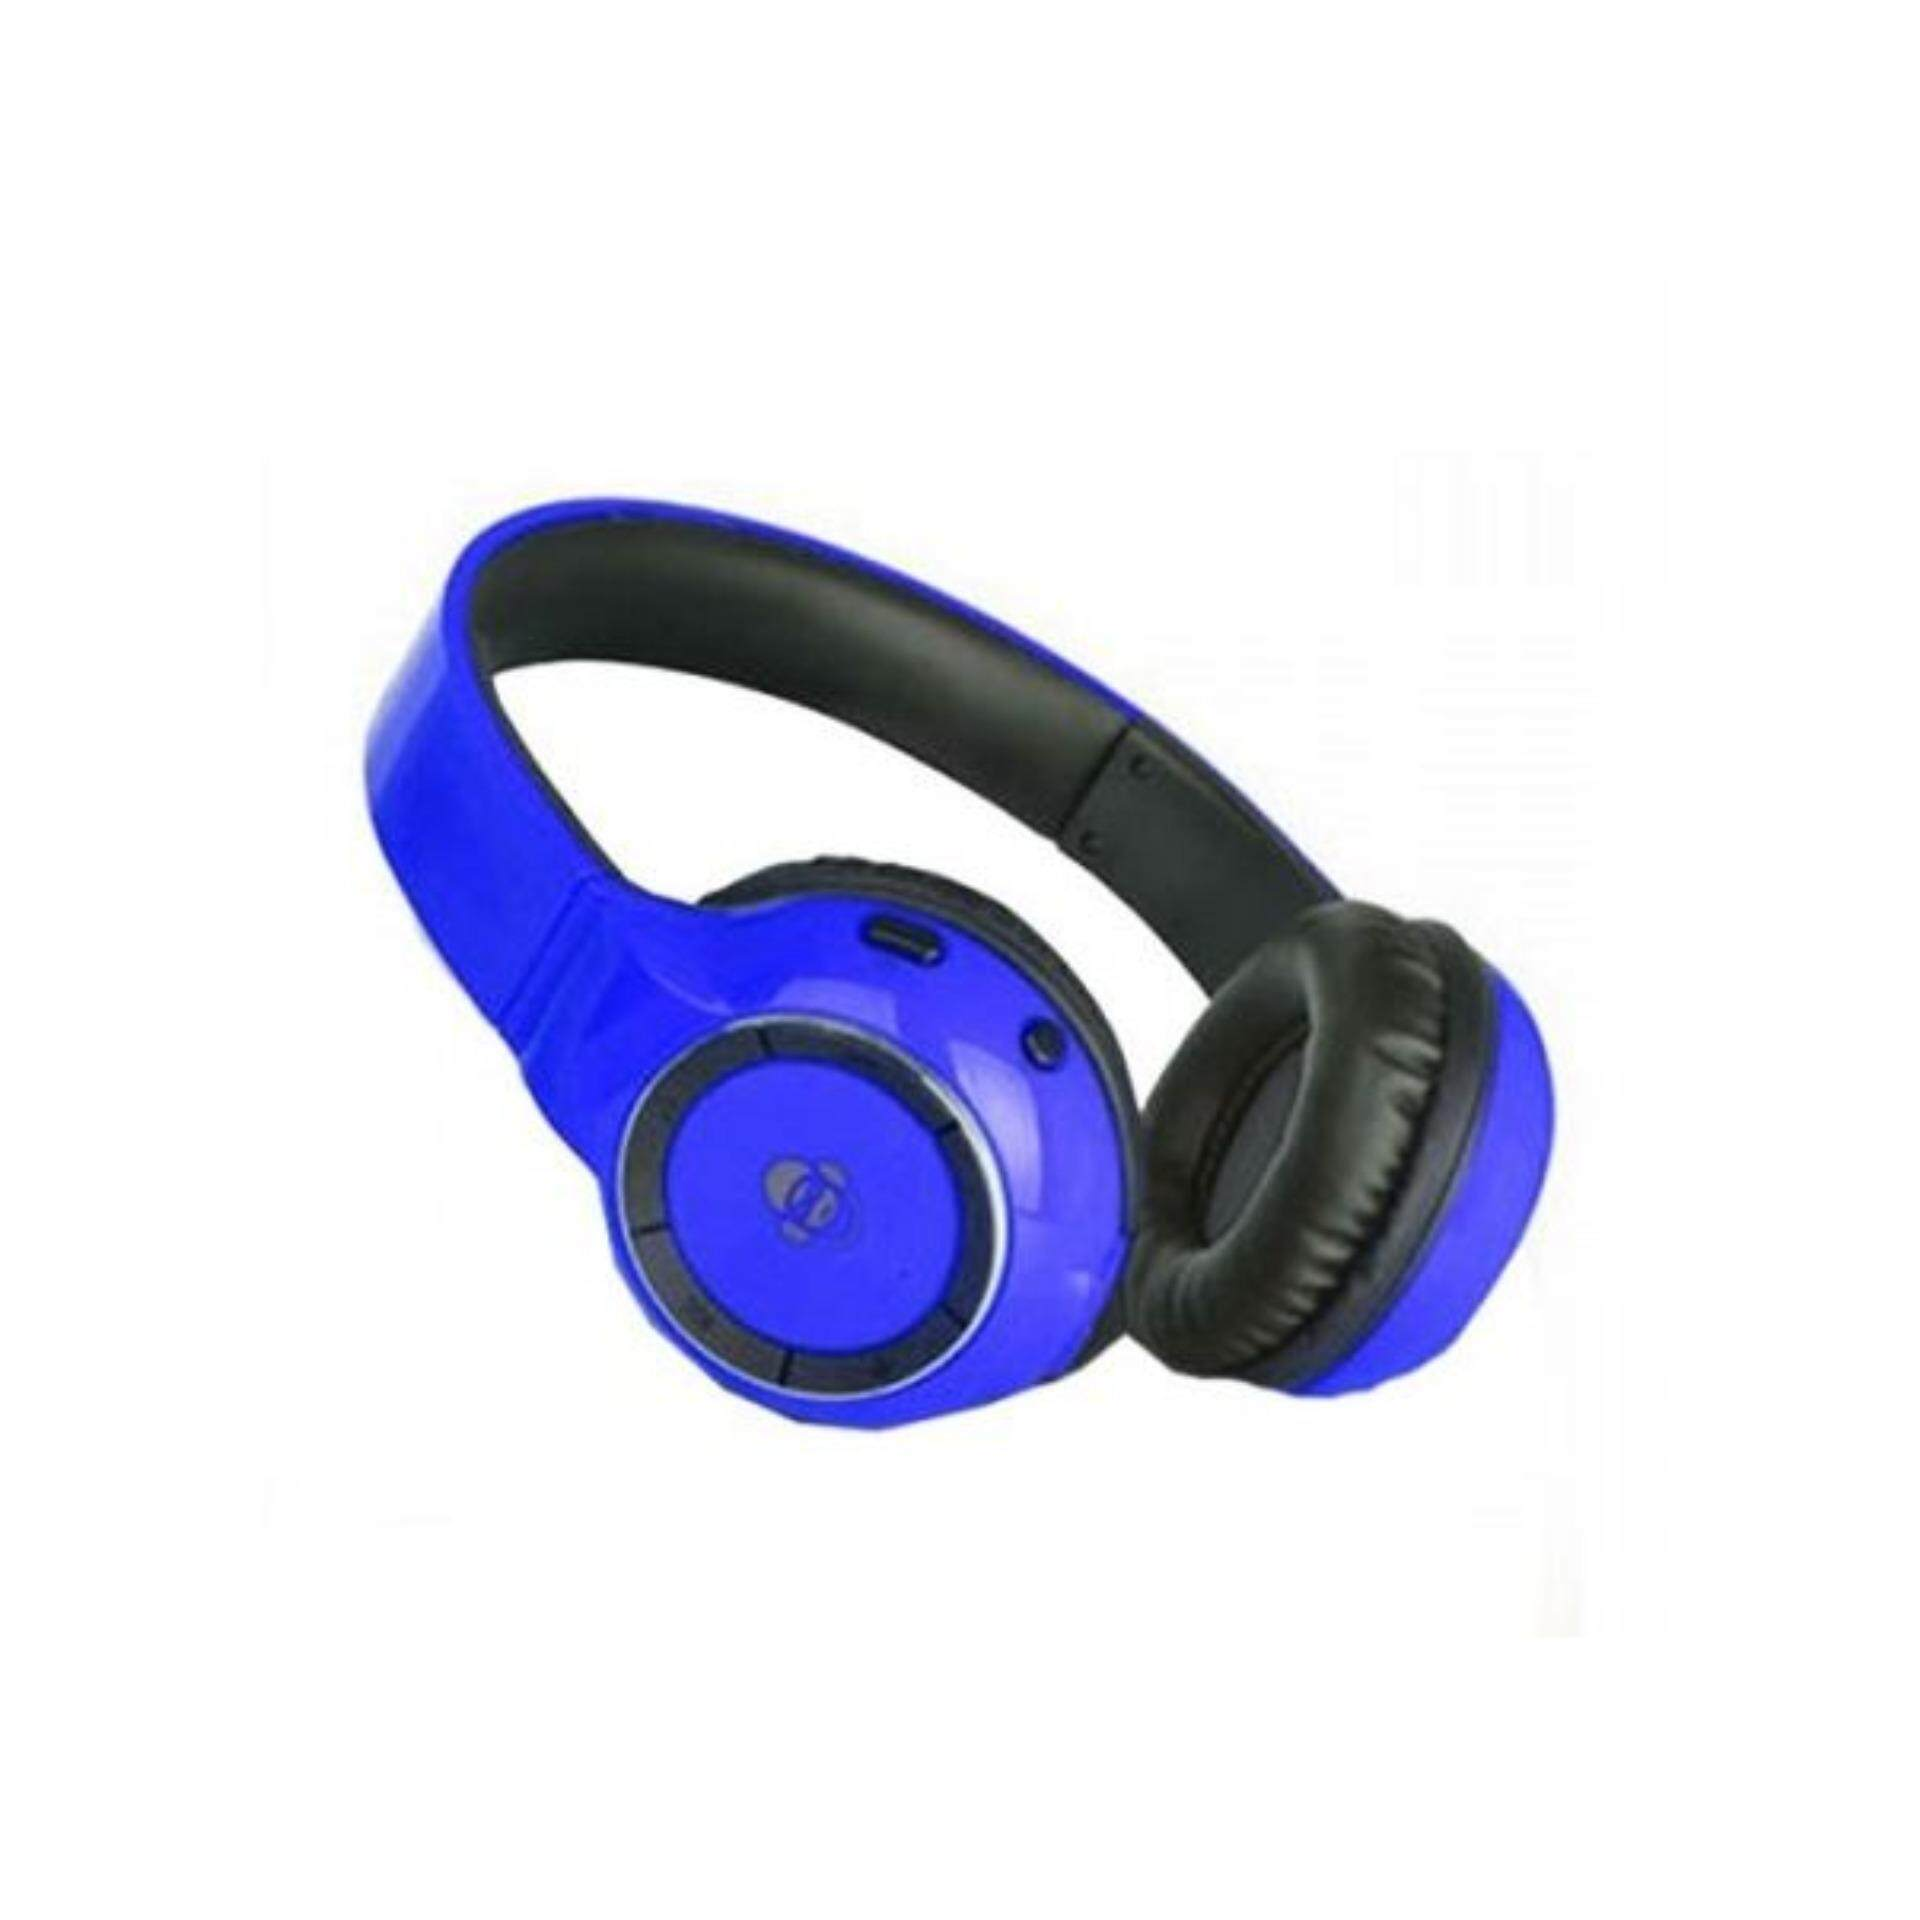 iDance Blue 300 Bluetooth Headphones